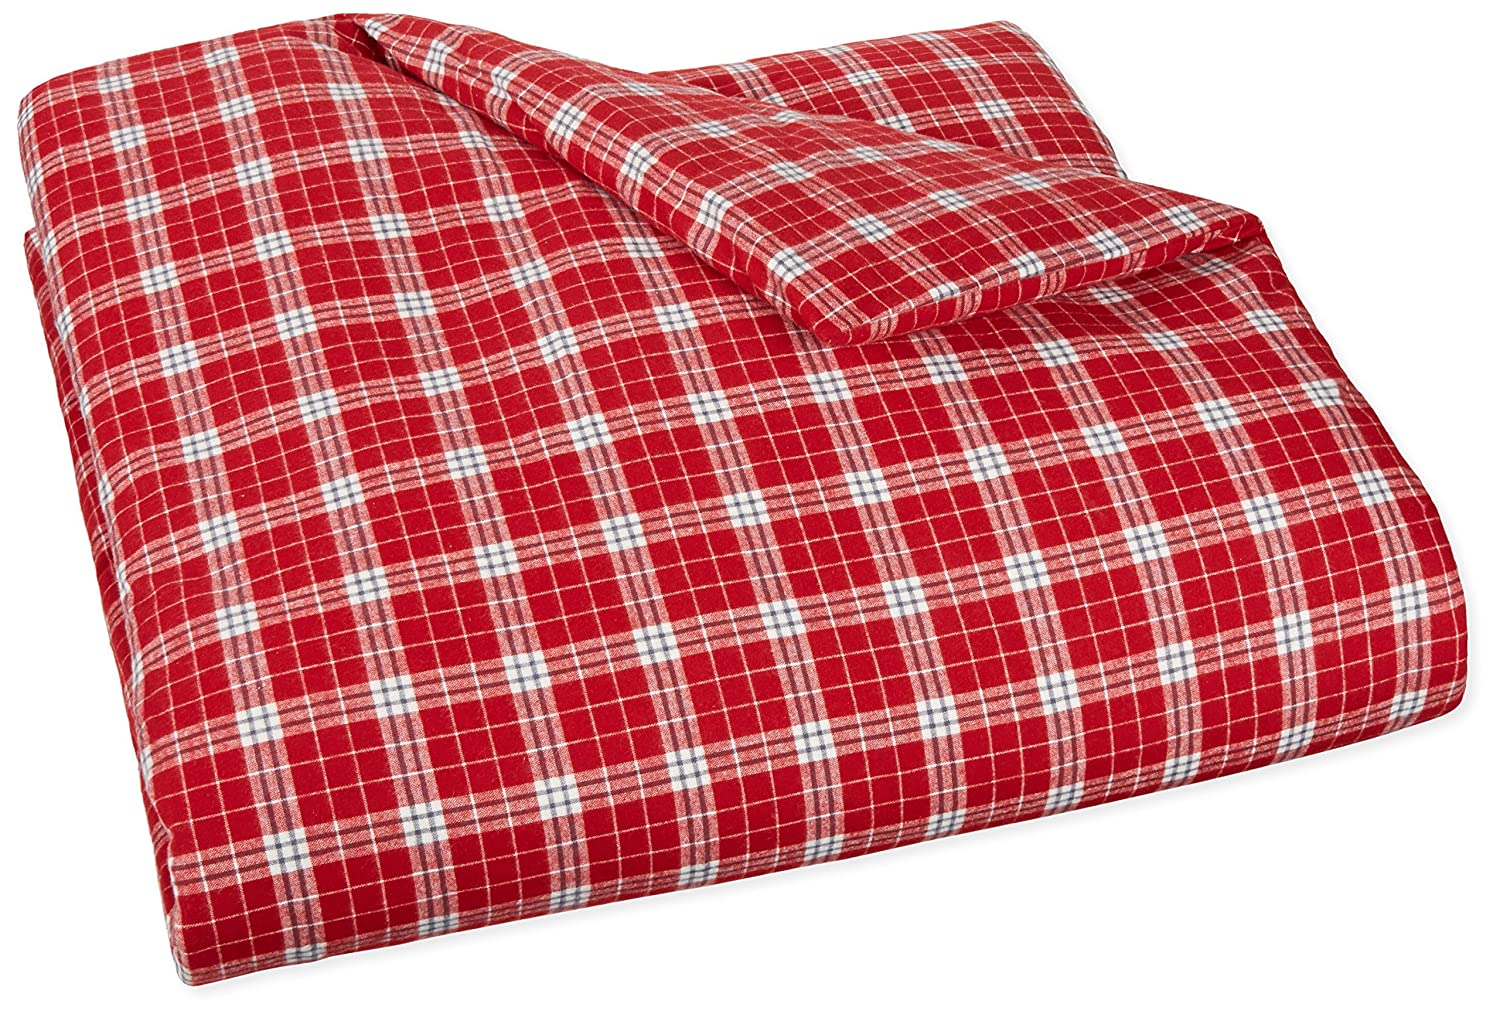 Pinzon 160 Gram Plaid Flannel Duvet Cover Bordeaux Plaid Twin FLDC-RDPL-TW